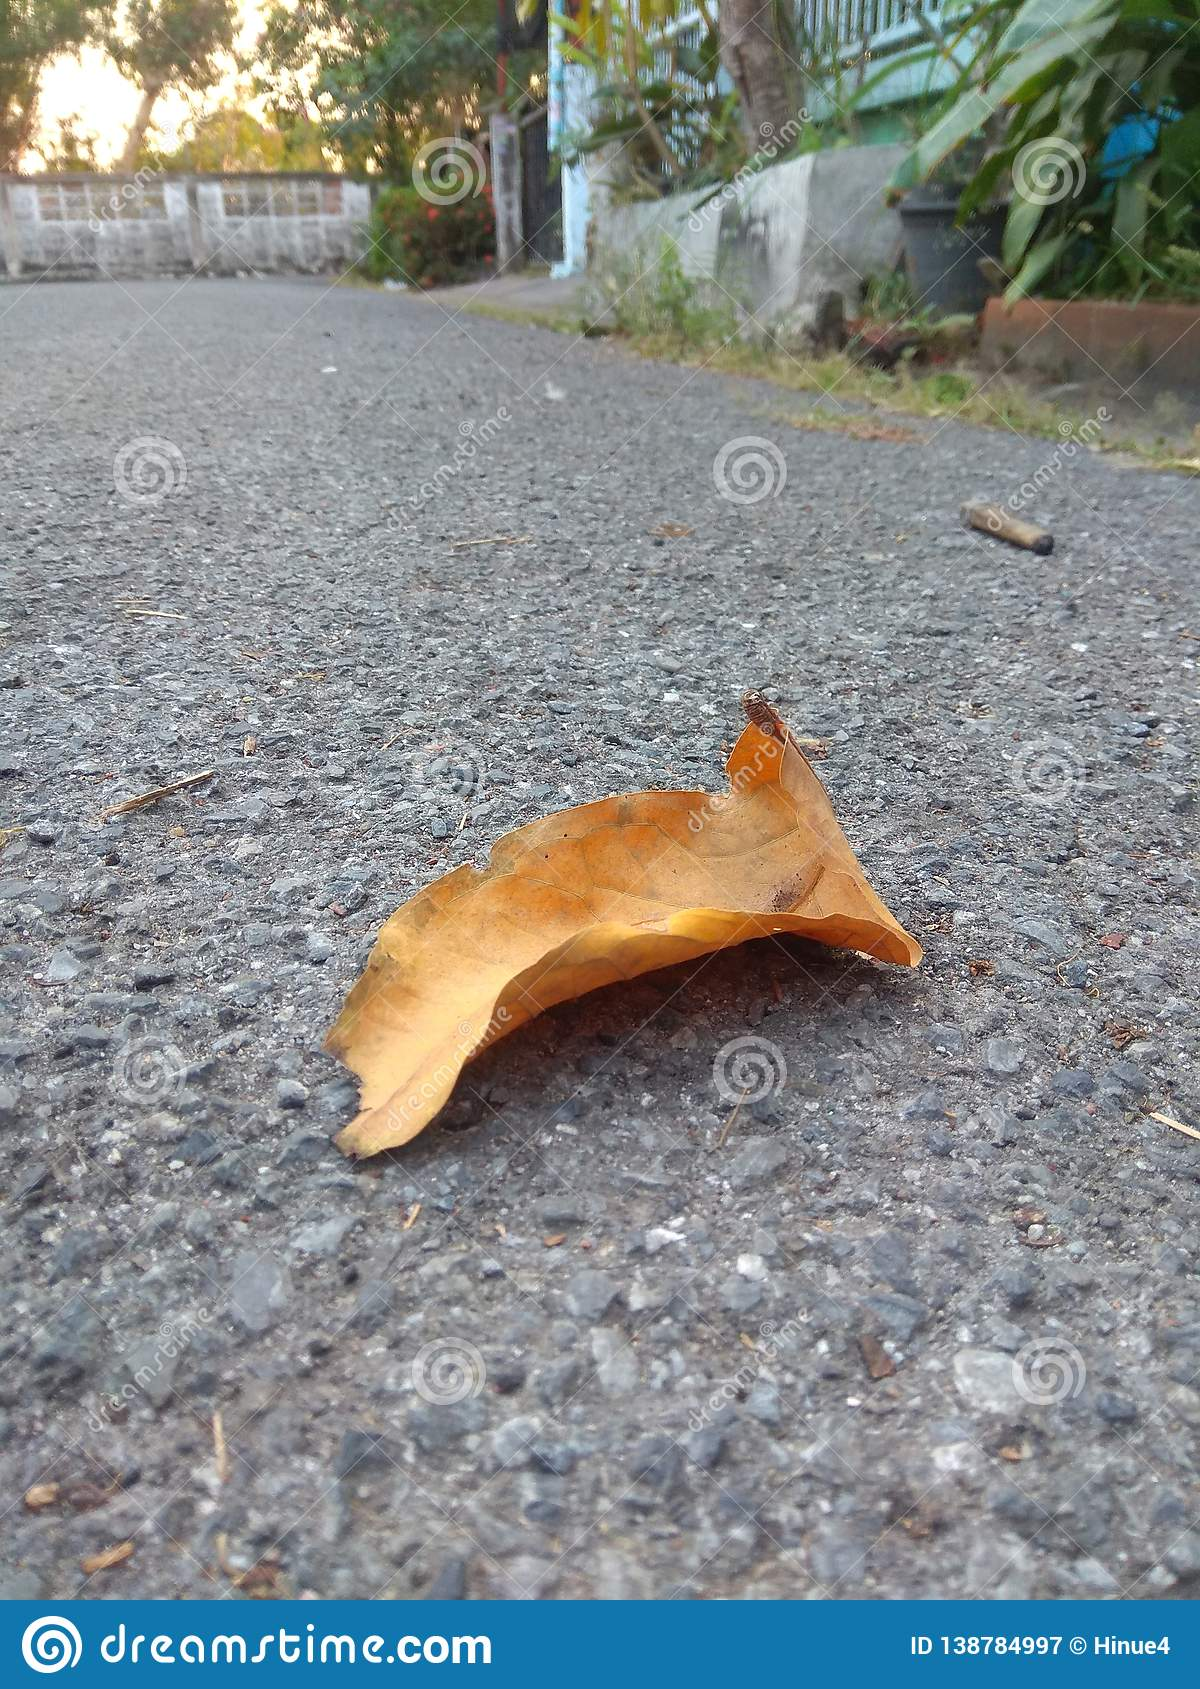 A dry leaf fallen on the floor concrete road background